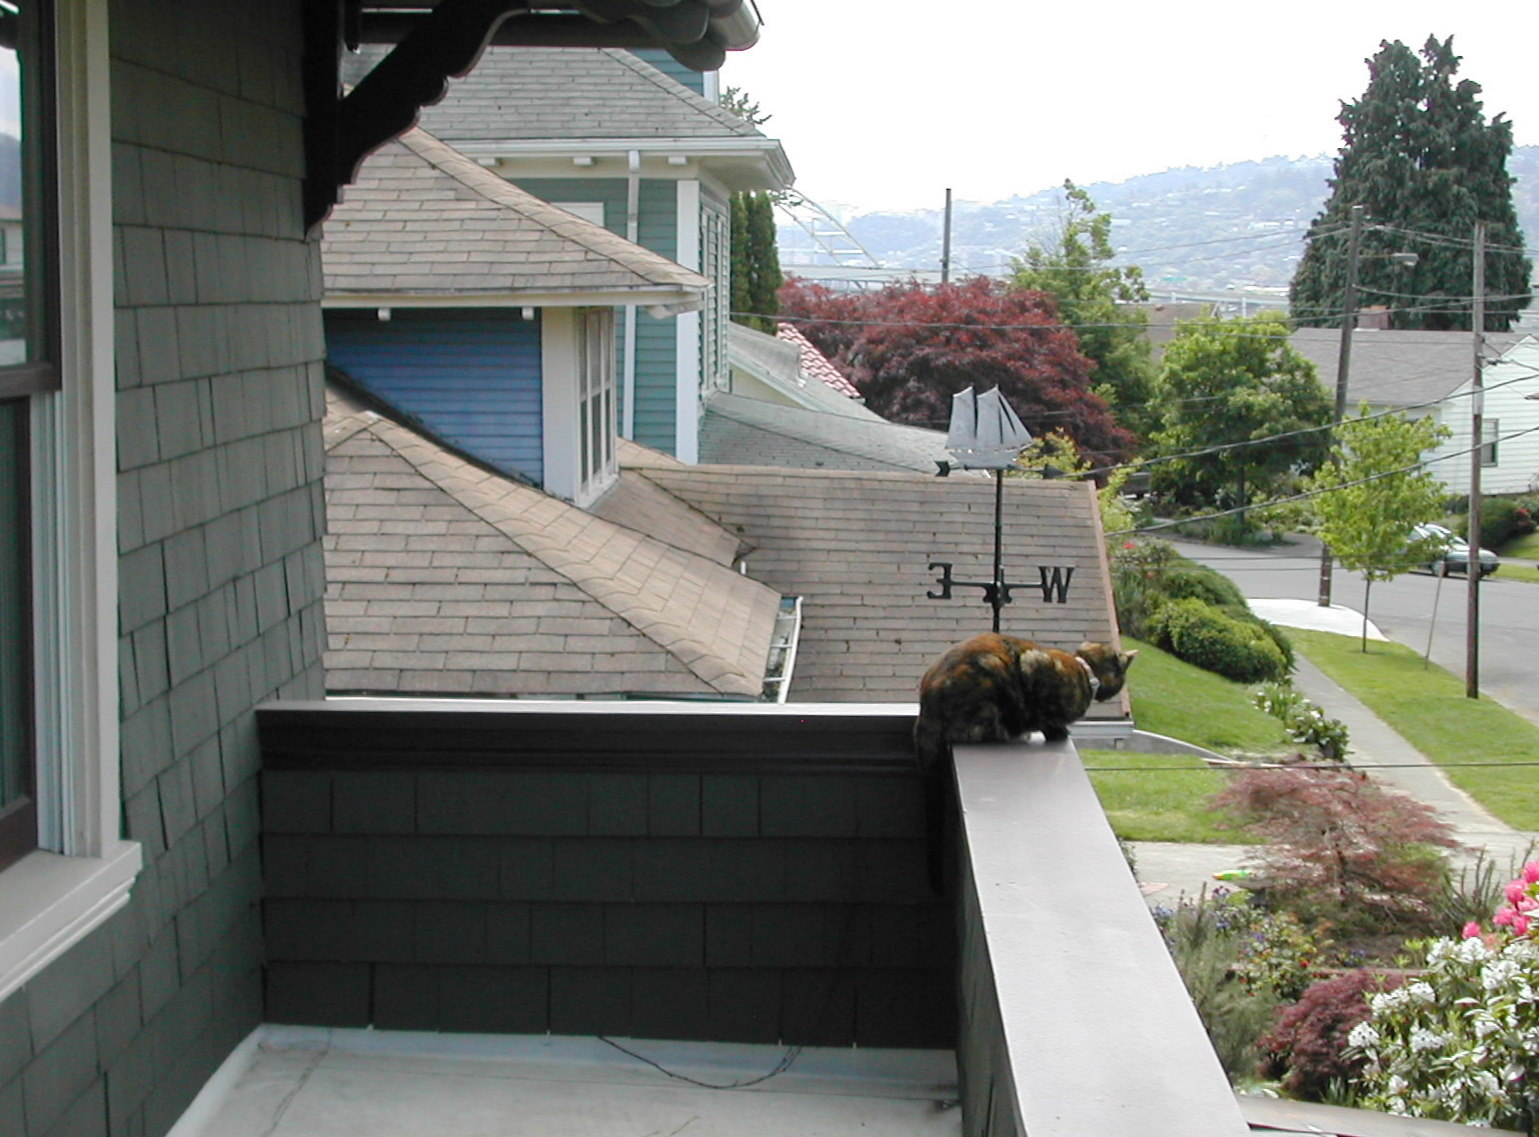 Adding a balcony to a house - This Balcony Was Shingled And Trimmed To Blend In With The Existing Exterior Of The House